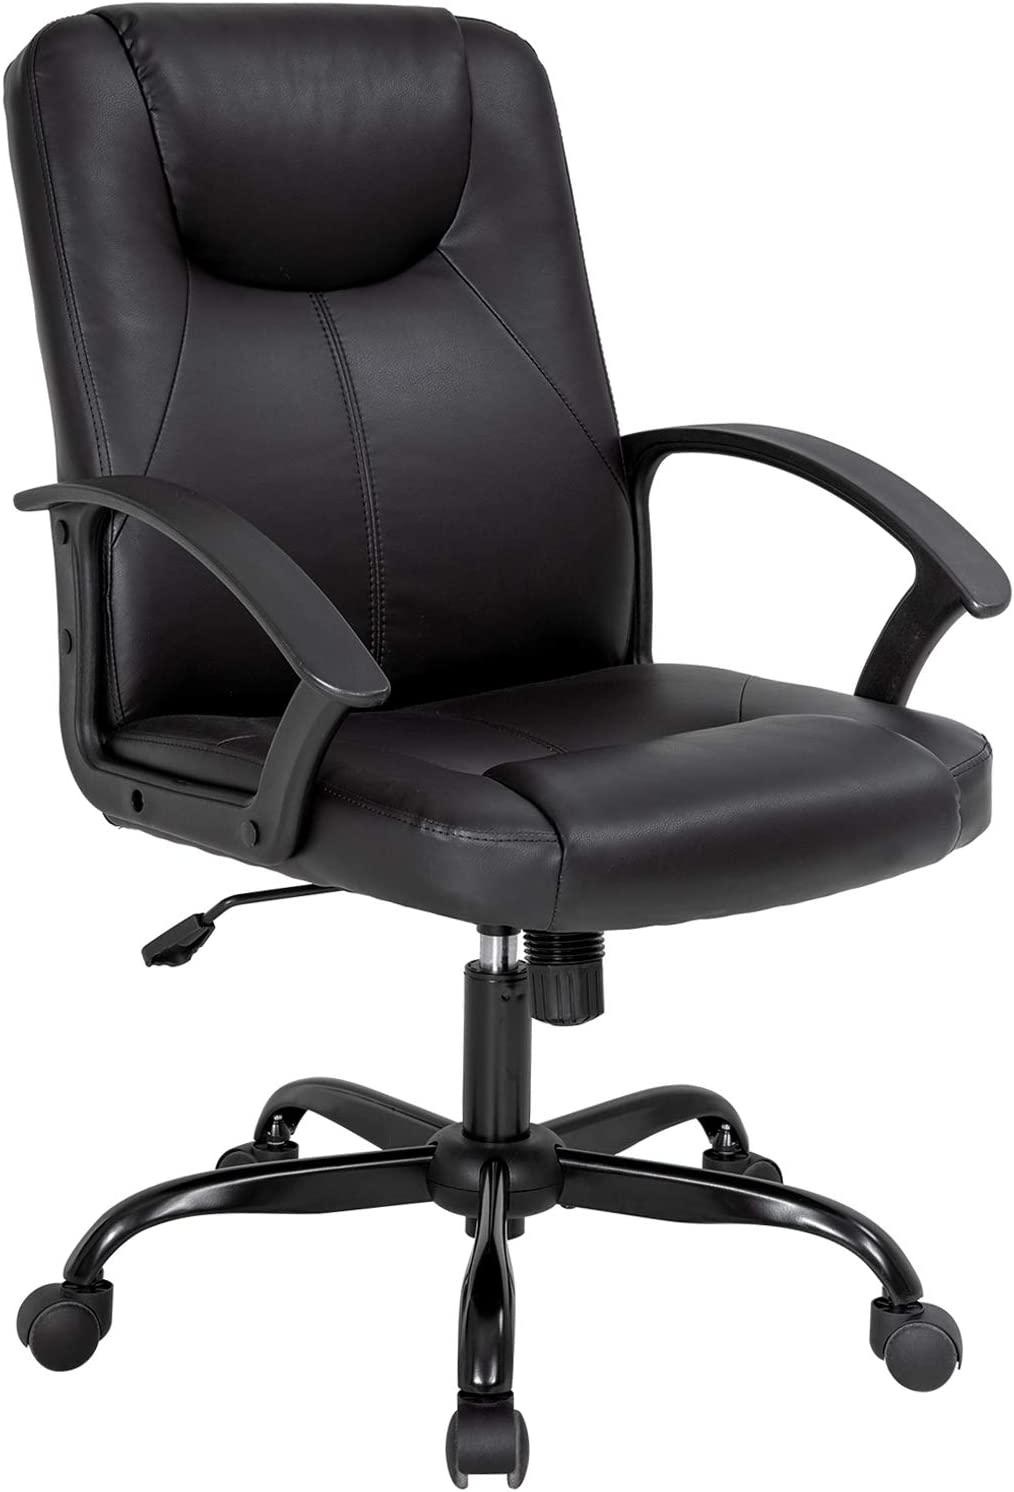 Office Chair Desk Chair Computer Chair with Lumbar Support PU Leather Executive Ergonomic Chair Rolling Swivel Adjustable Task Chair for Men(Black)